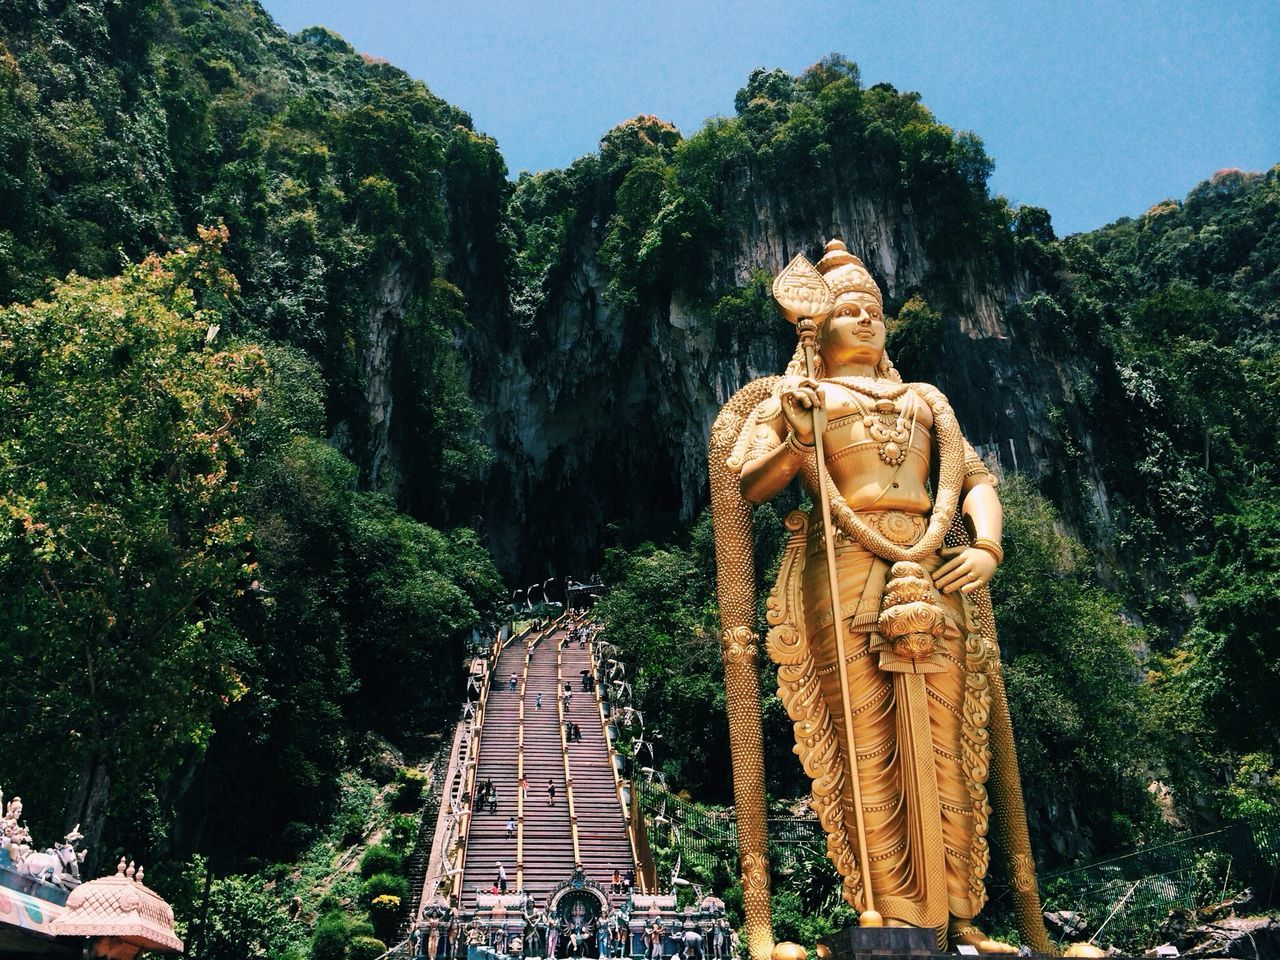 Low angle view of lord murugan statue at batu caves against clear sky